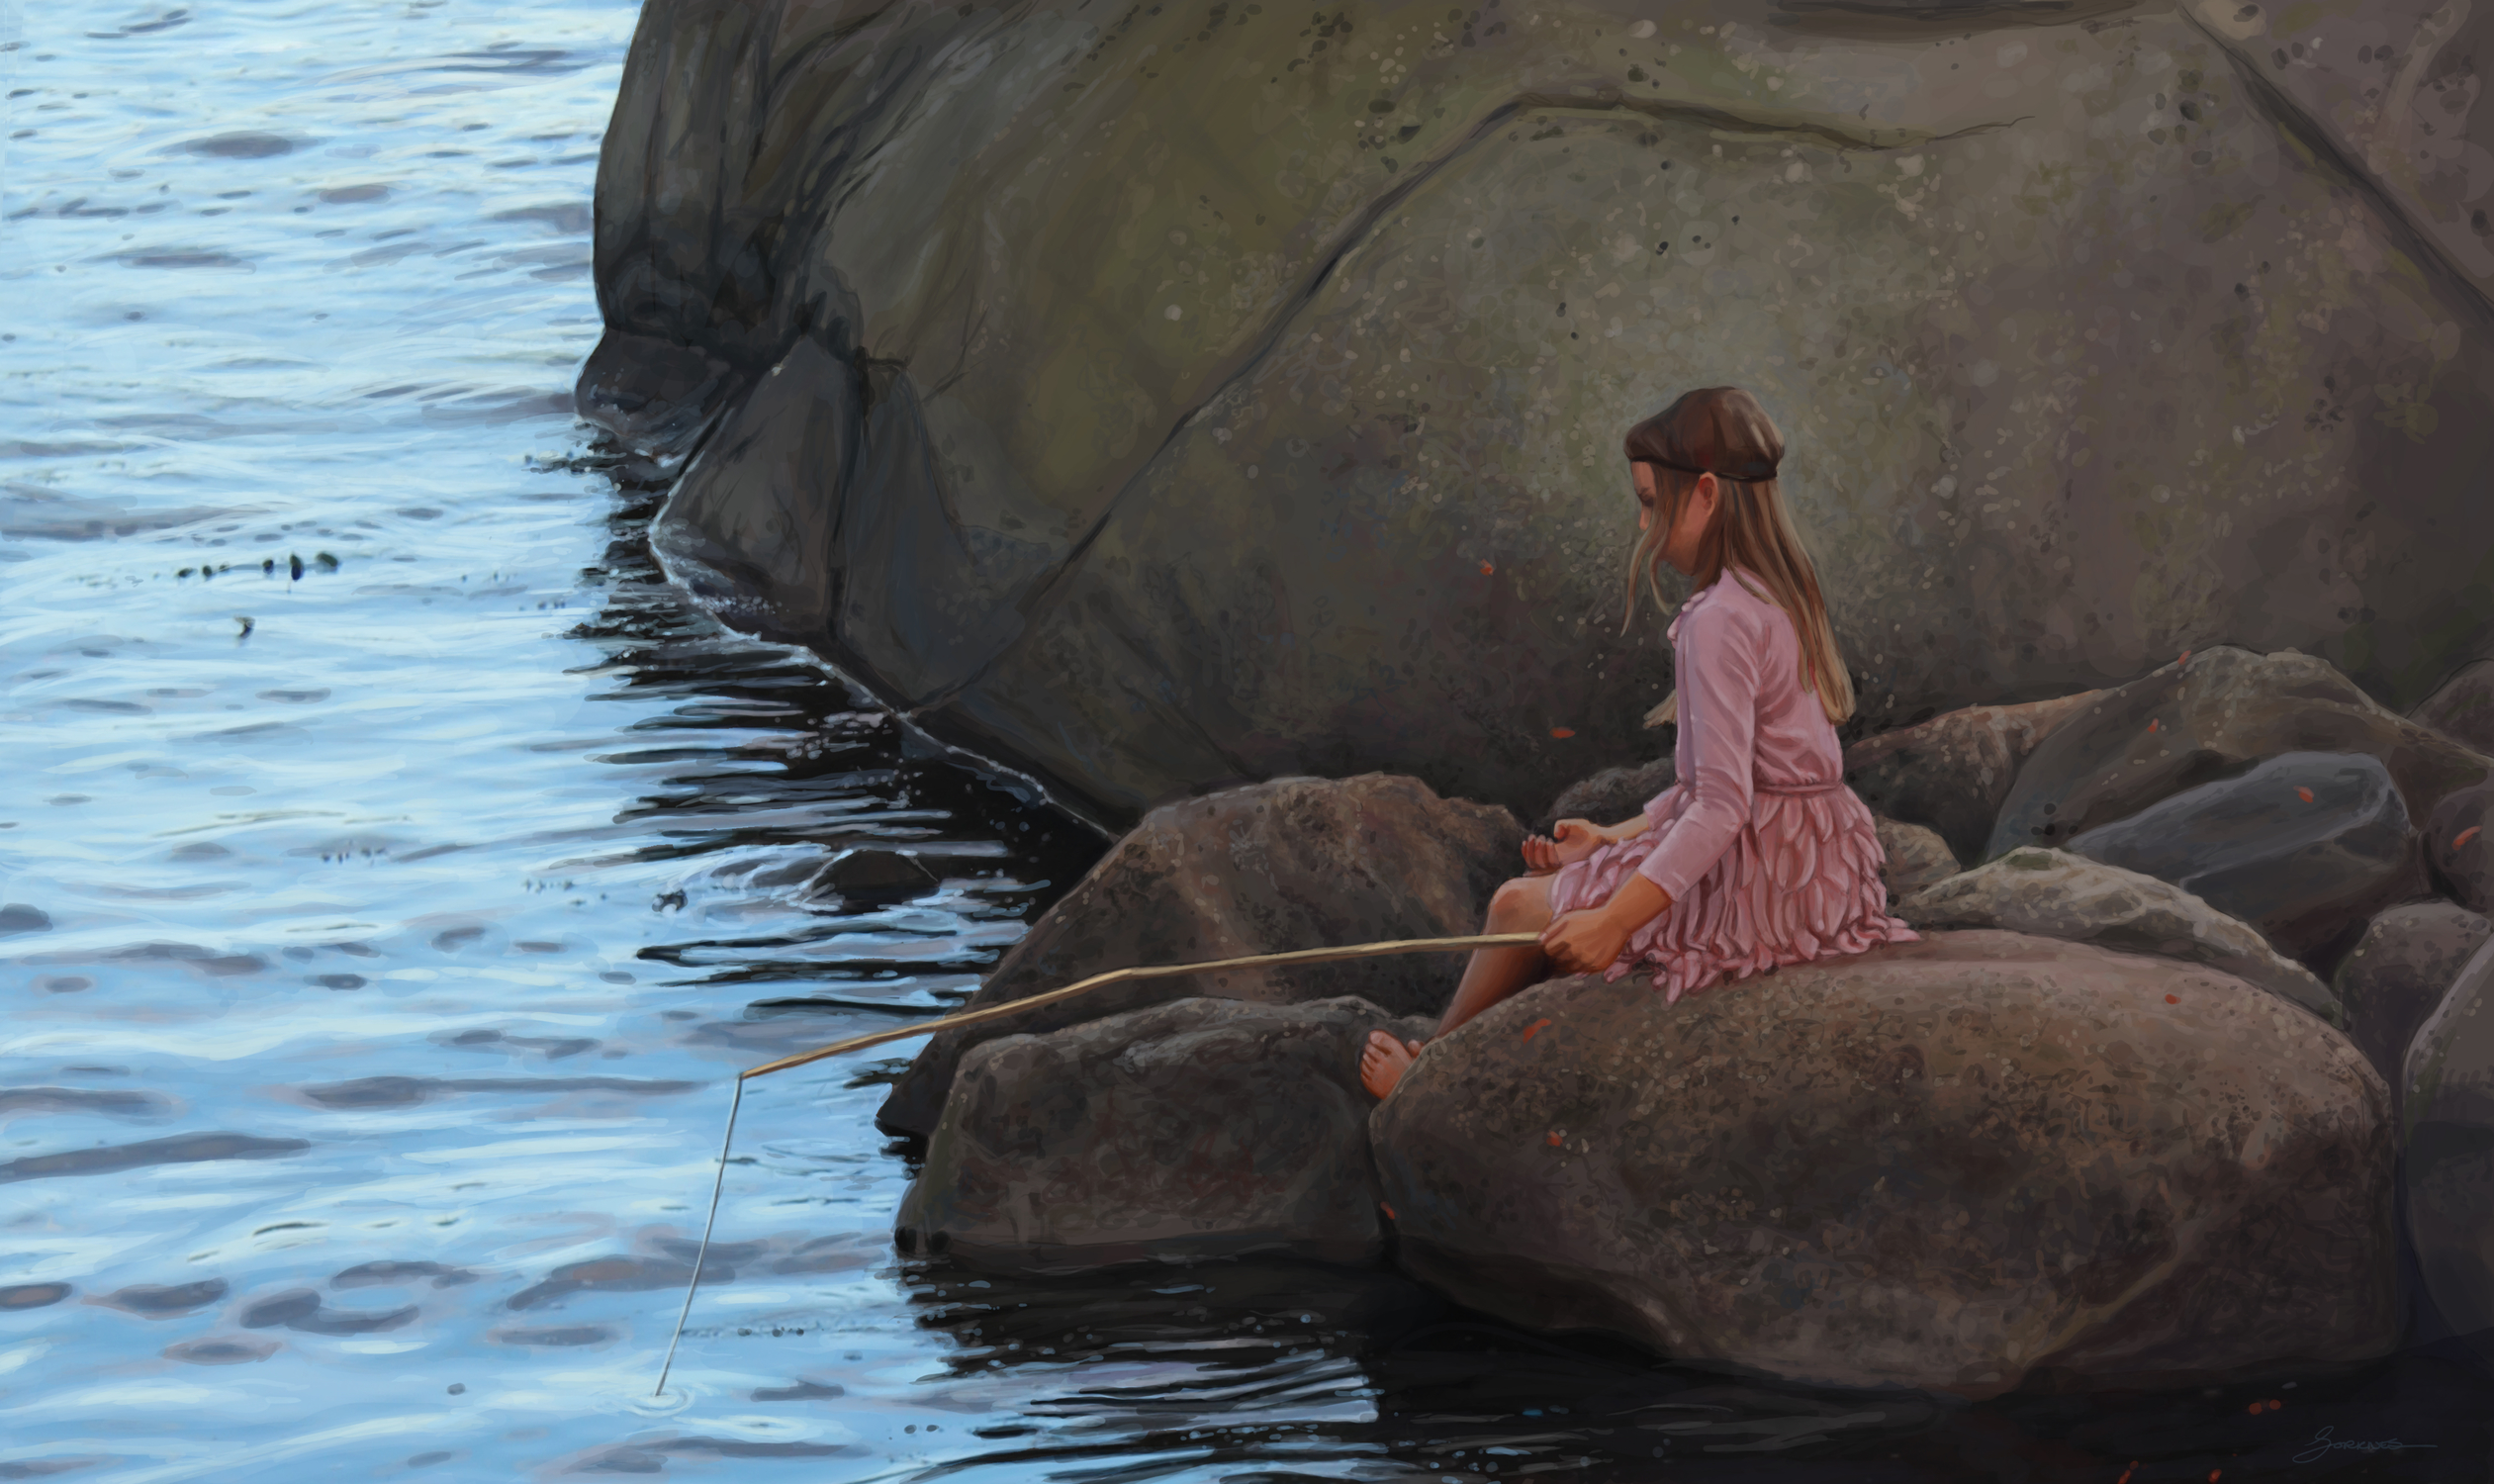 Girl By Water Artwork by Kristin Sorknes Hundstad